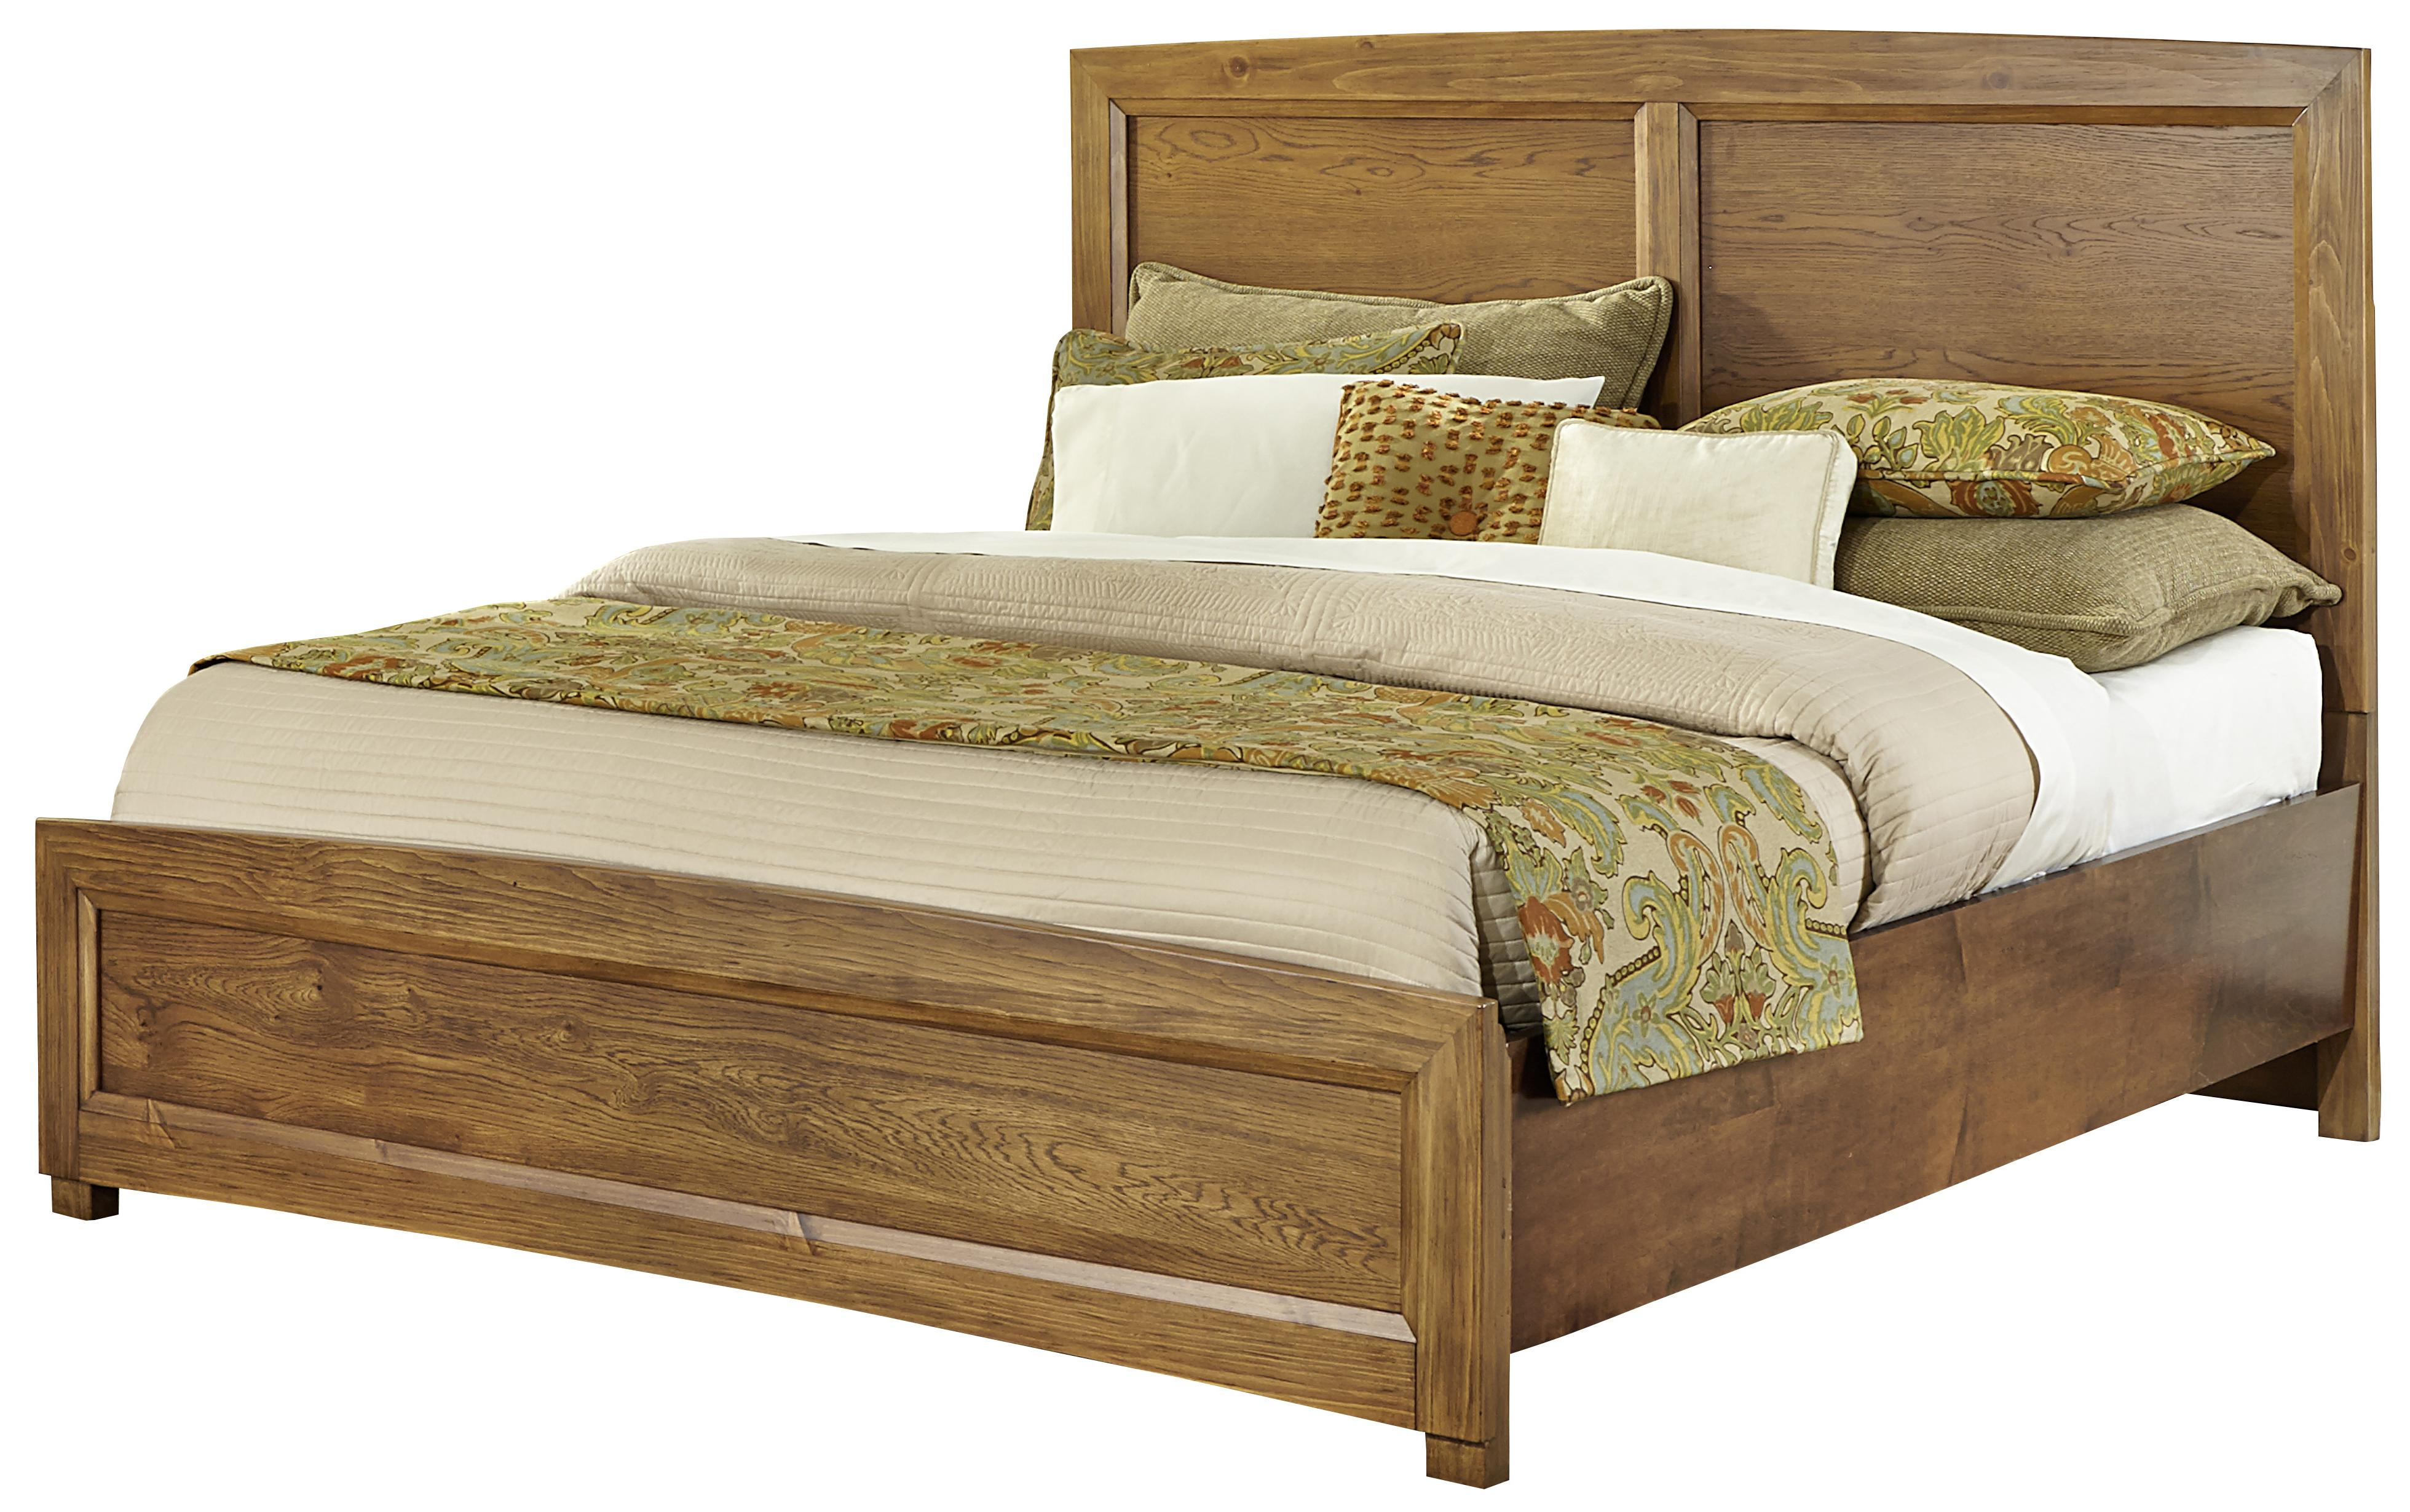 Vaughan bassett transitions queen panel bed johnny for Panel bed mattress